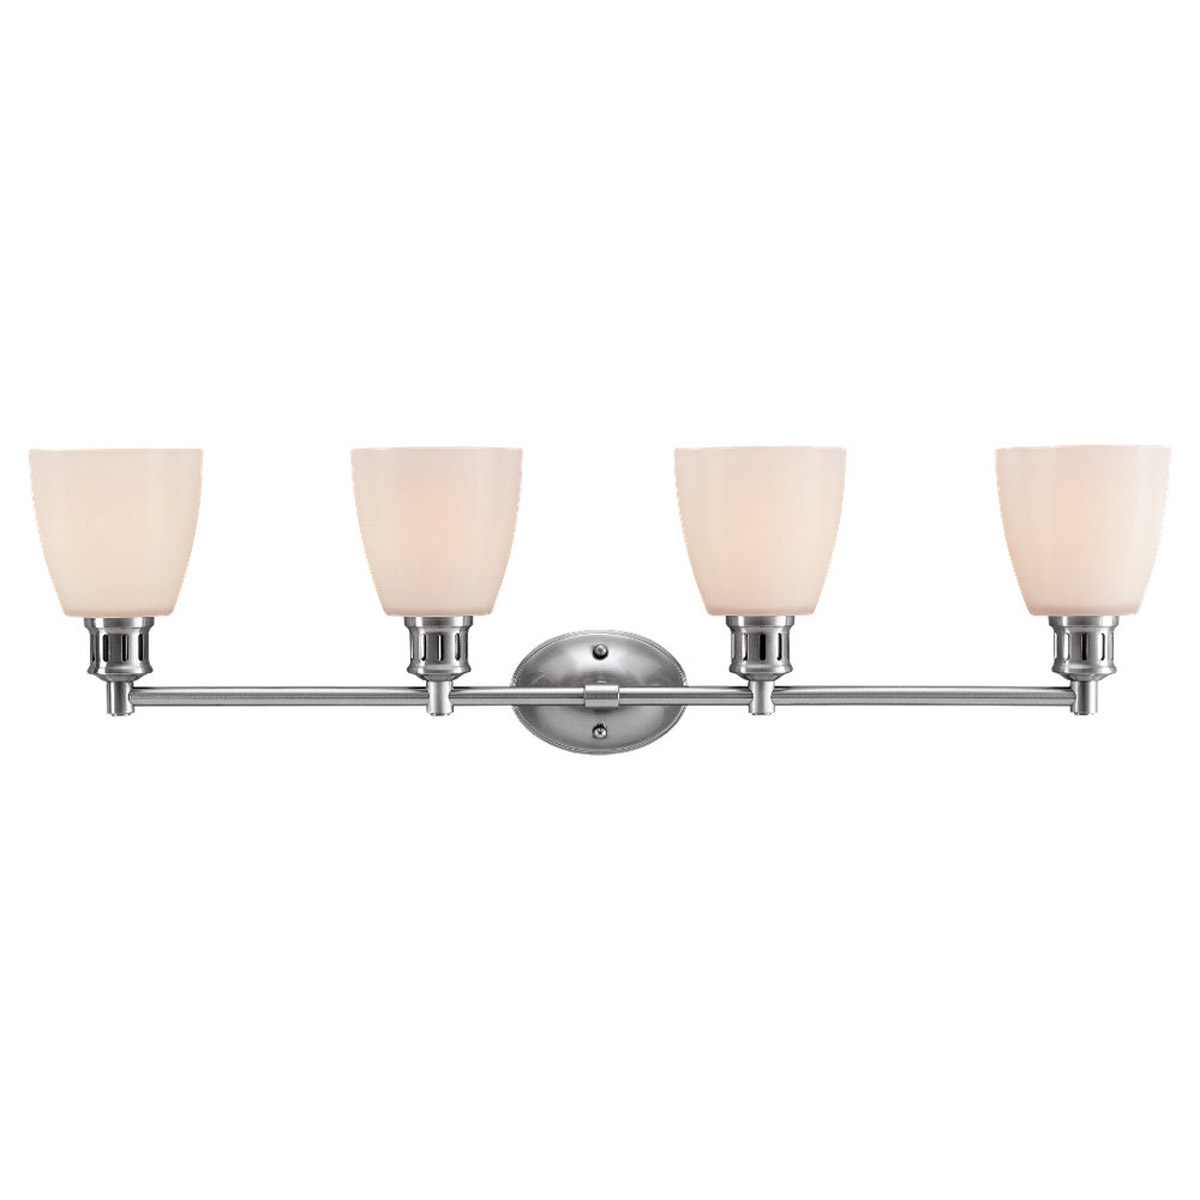 Sea Gull Lighting Century 4 Light Bath Vanity in Brushed Nickel 44476-962